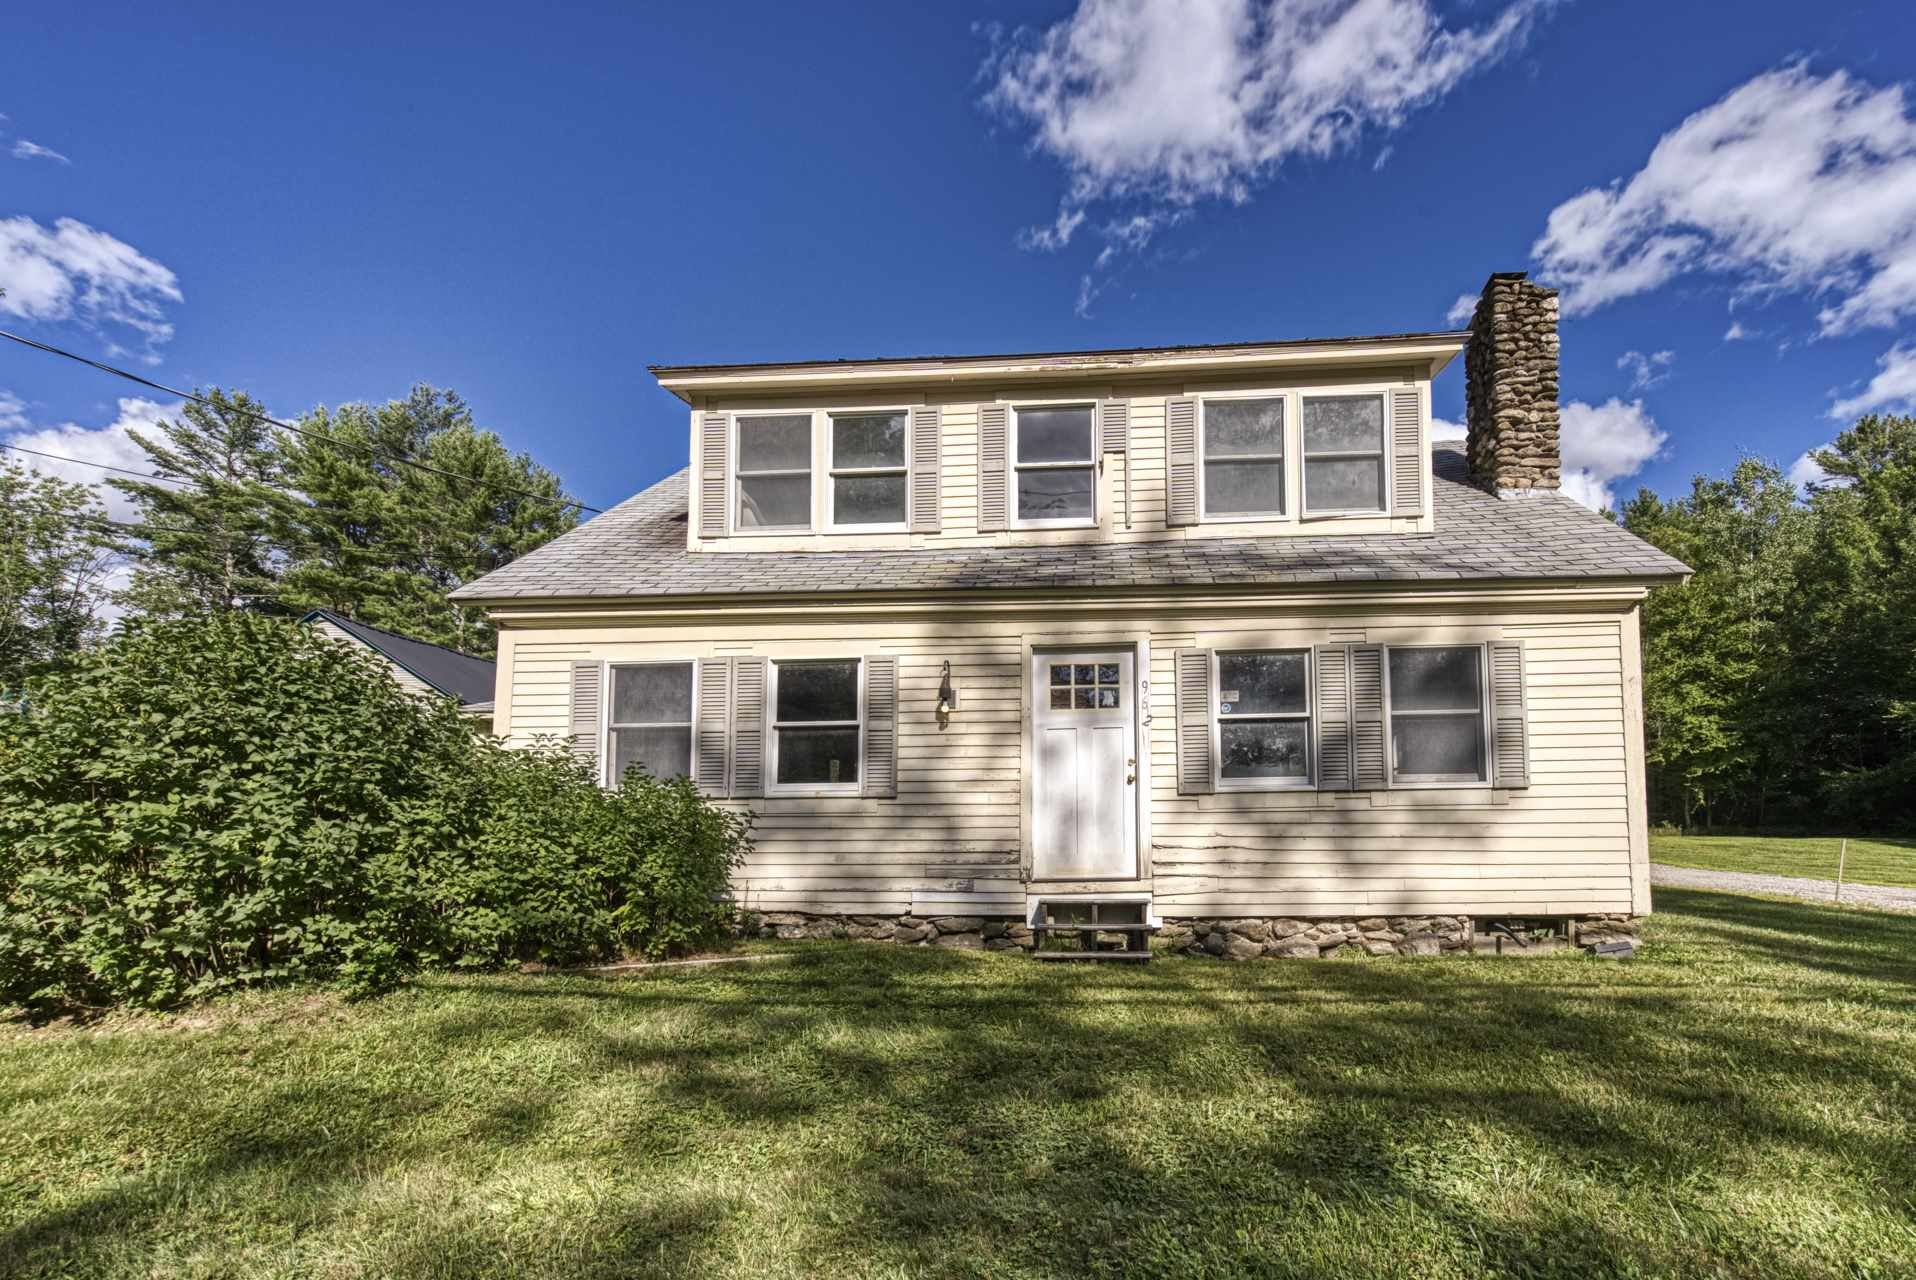 962 Route 11, Sunapee, NH 03782 - MLS#: 4820860